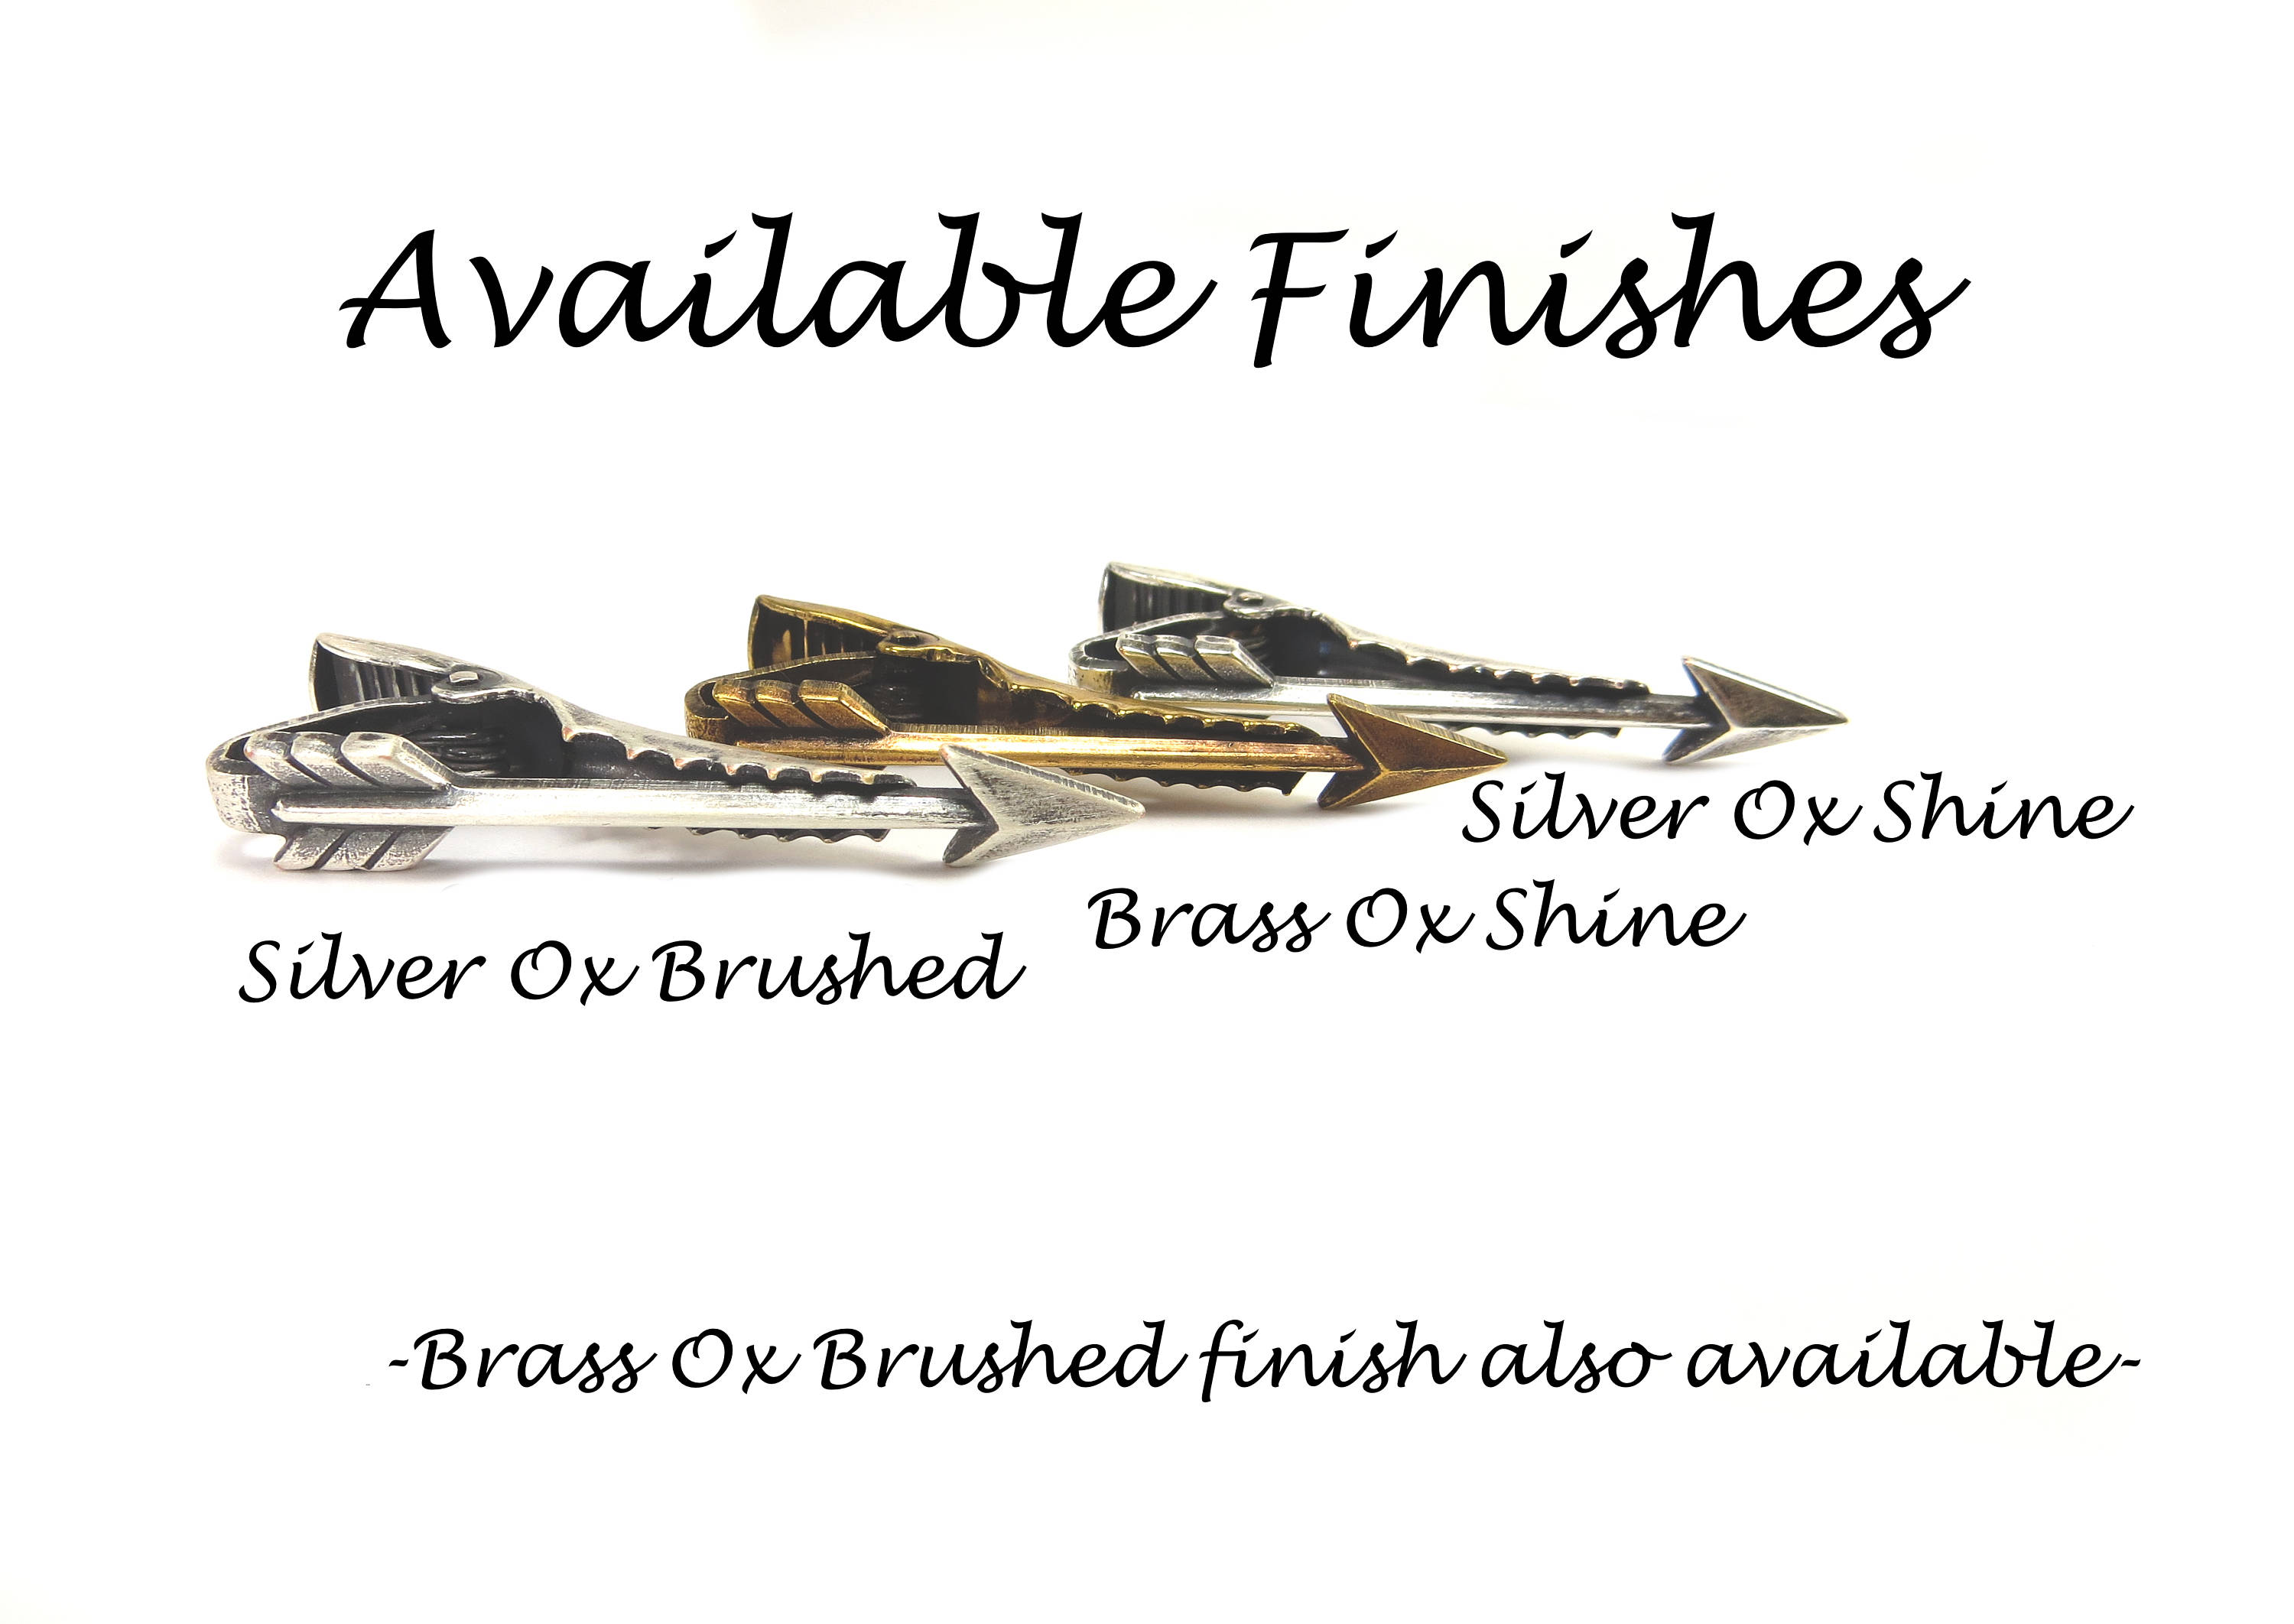 Arrow Tie Bar, Sterling Silver & Antiqued Brass Finishes, Gifts For Men, Gifts For Dad, Black Friday Sale, Cyber Monday Sale